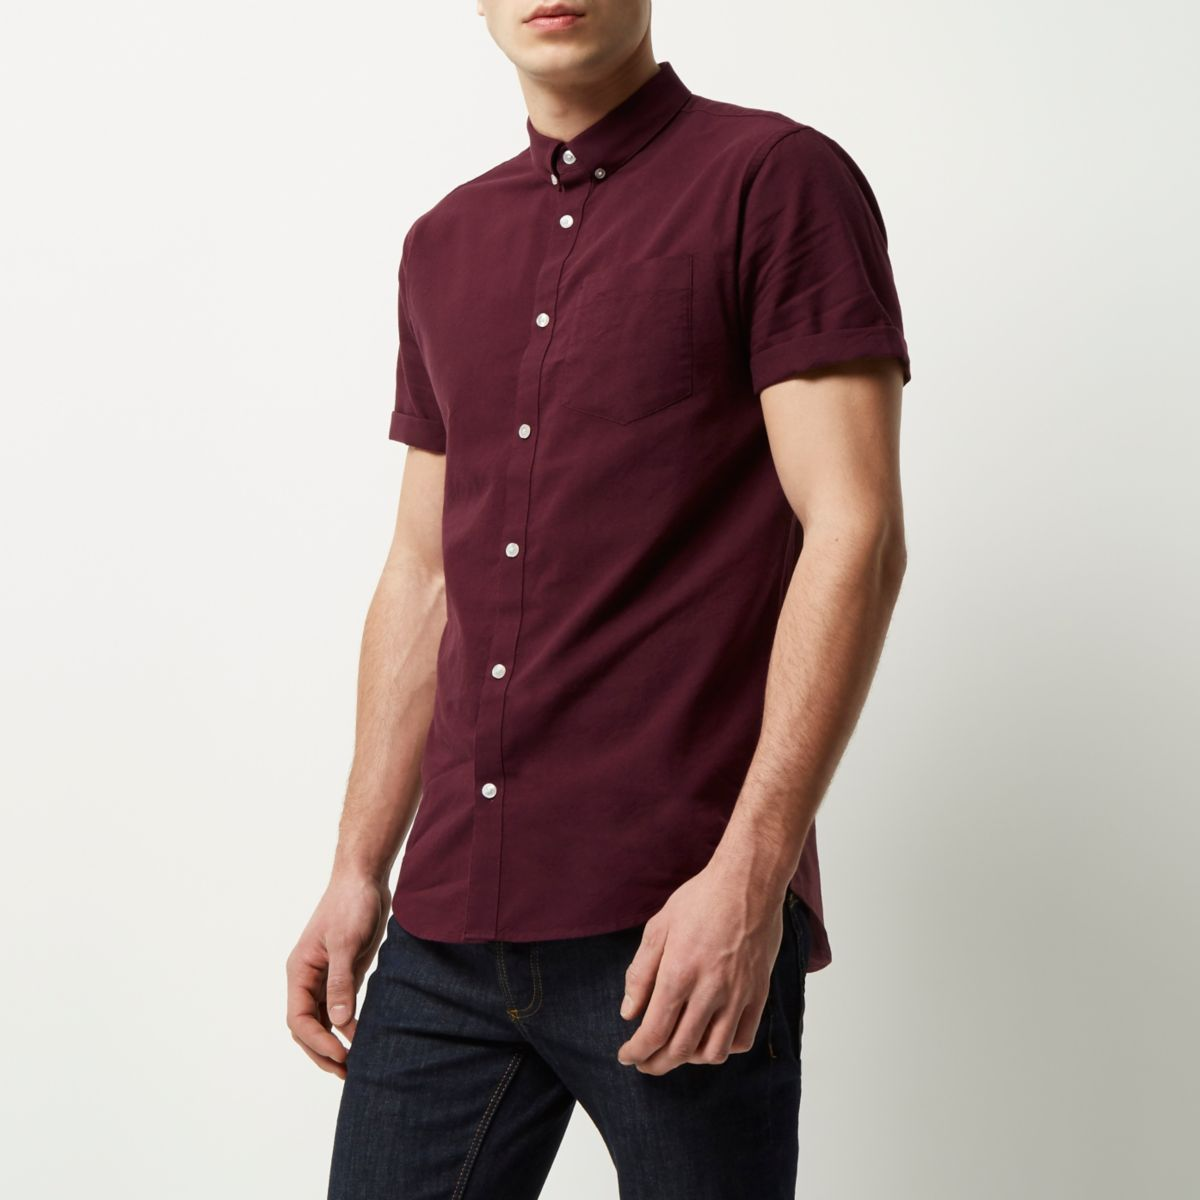 Burgundy short sleeve casual Oxford shirt